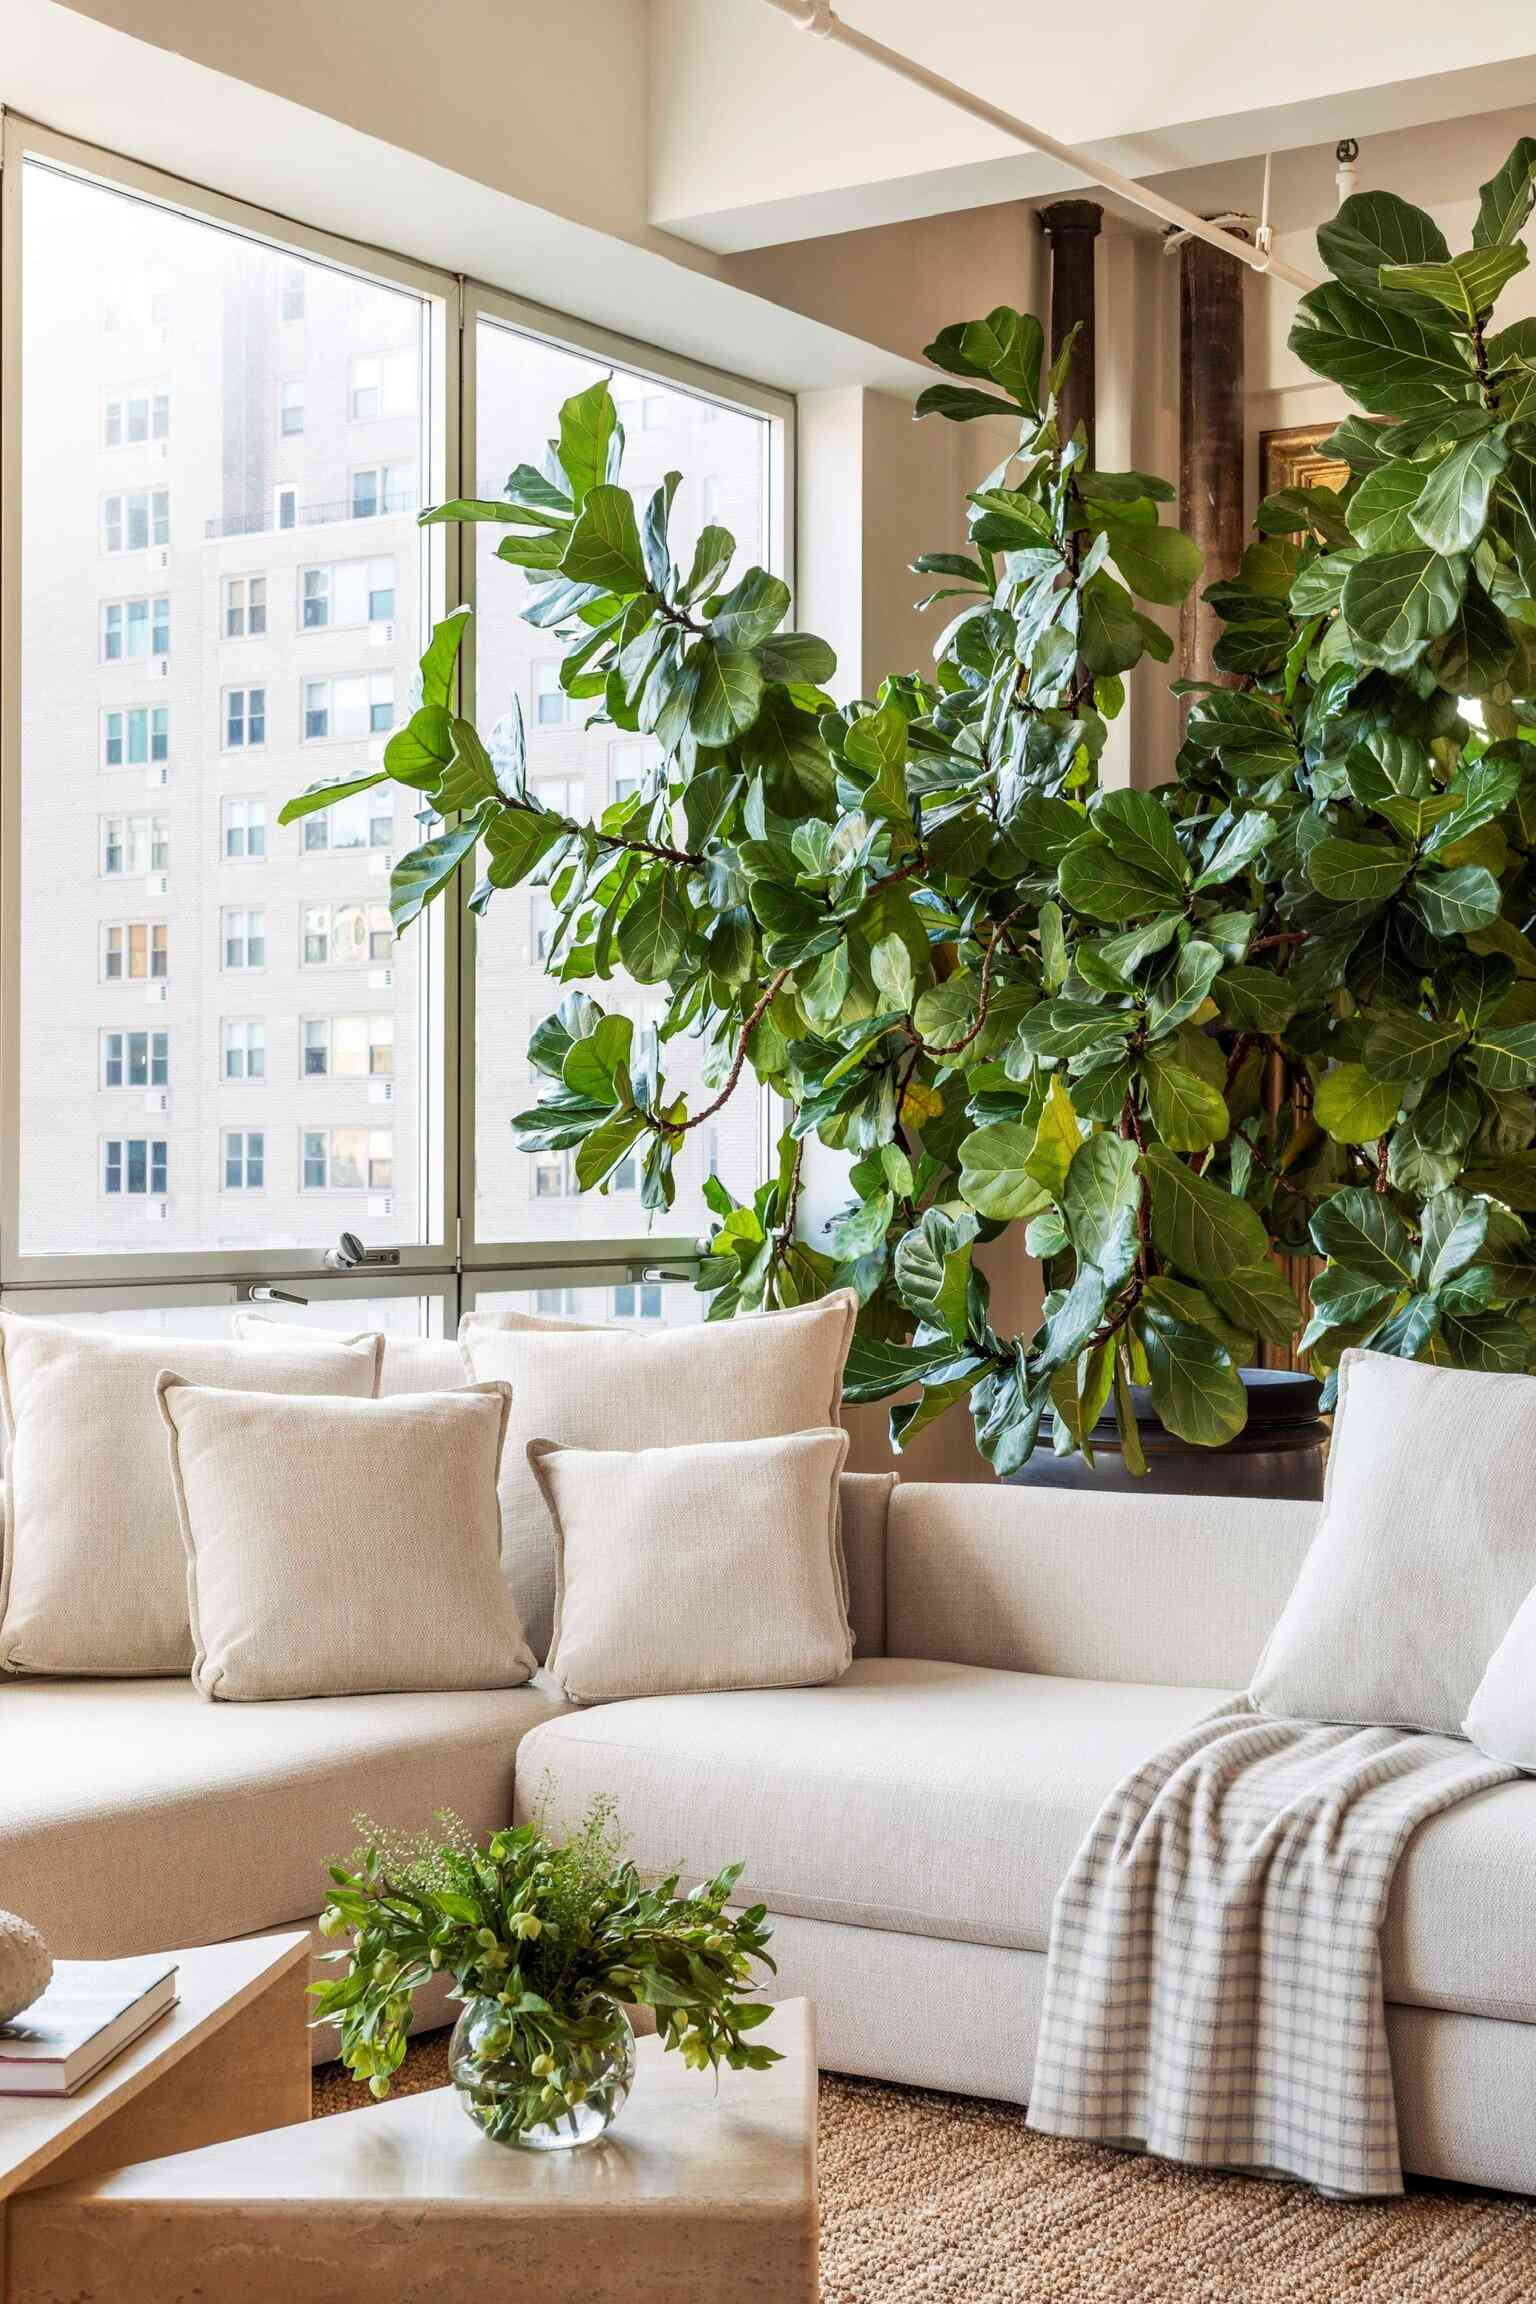 A living room with a large off-white couch and a massive fiddle leaf fig tree